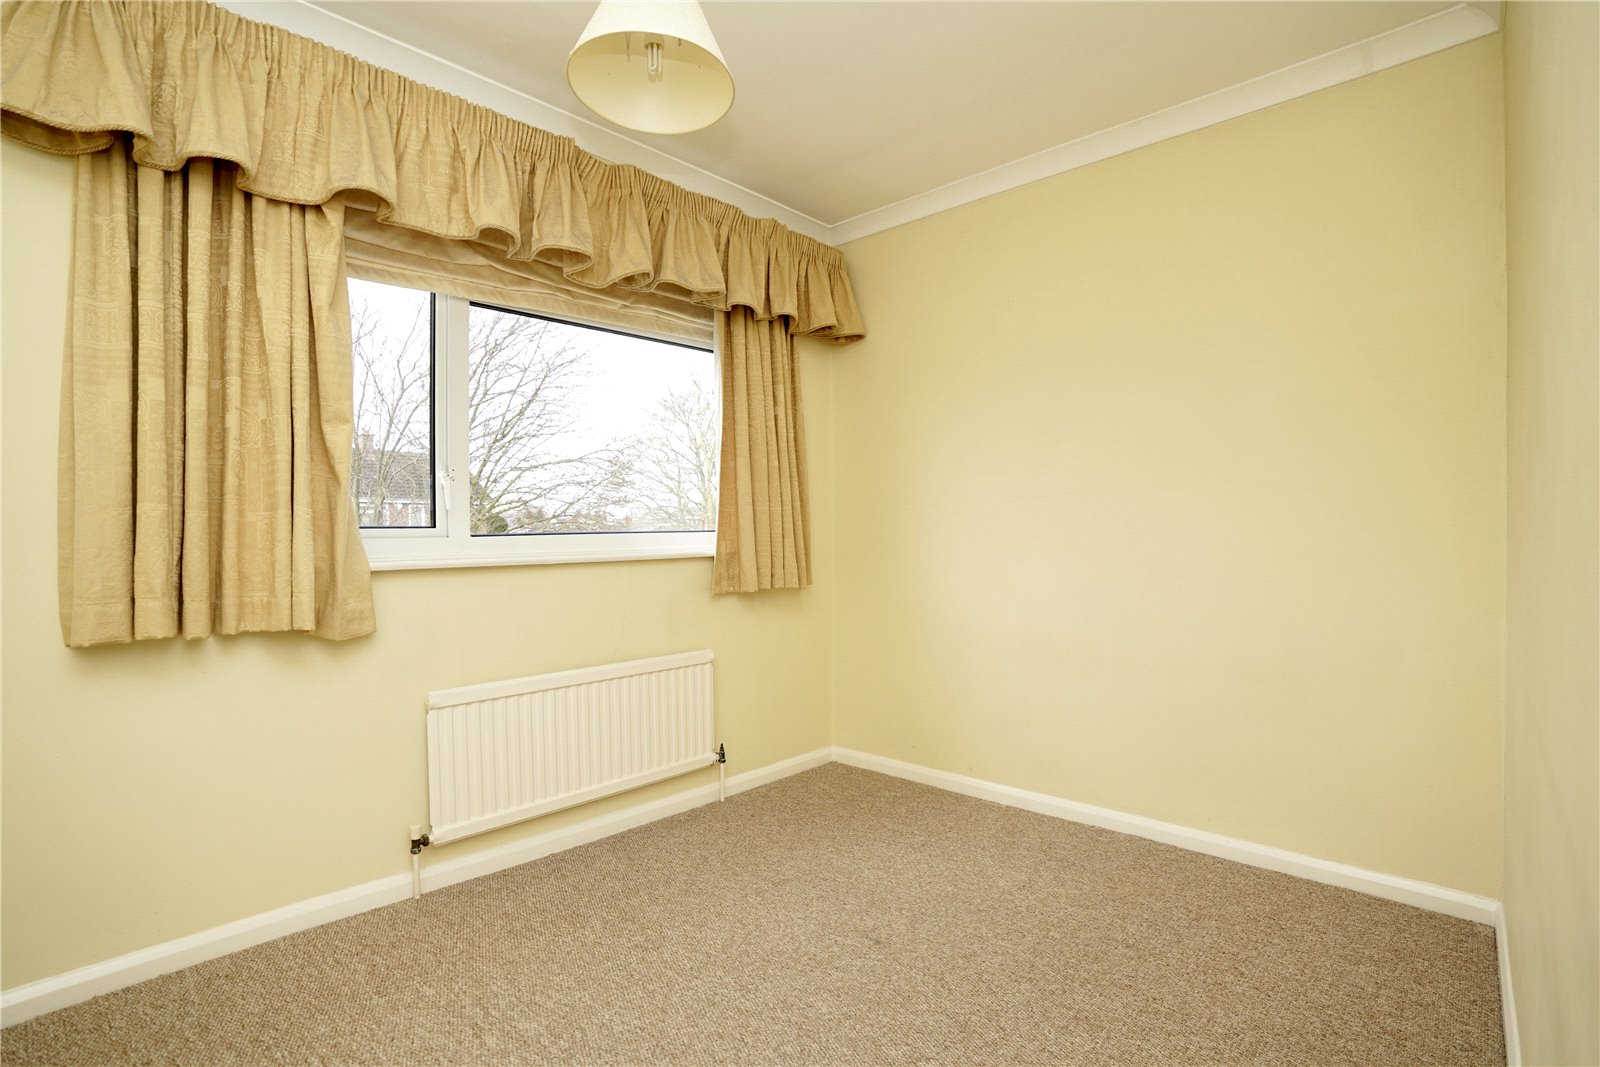 4 bed house for sale in Manor Close, Great Staughton 8